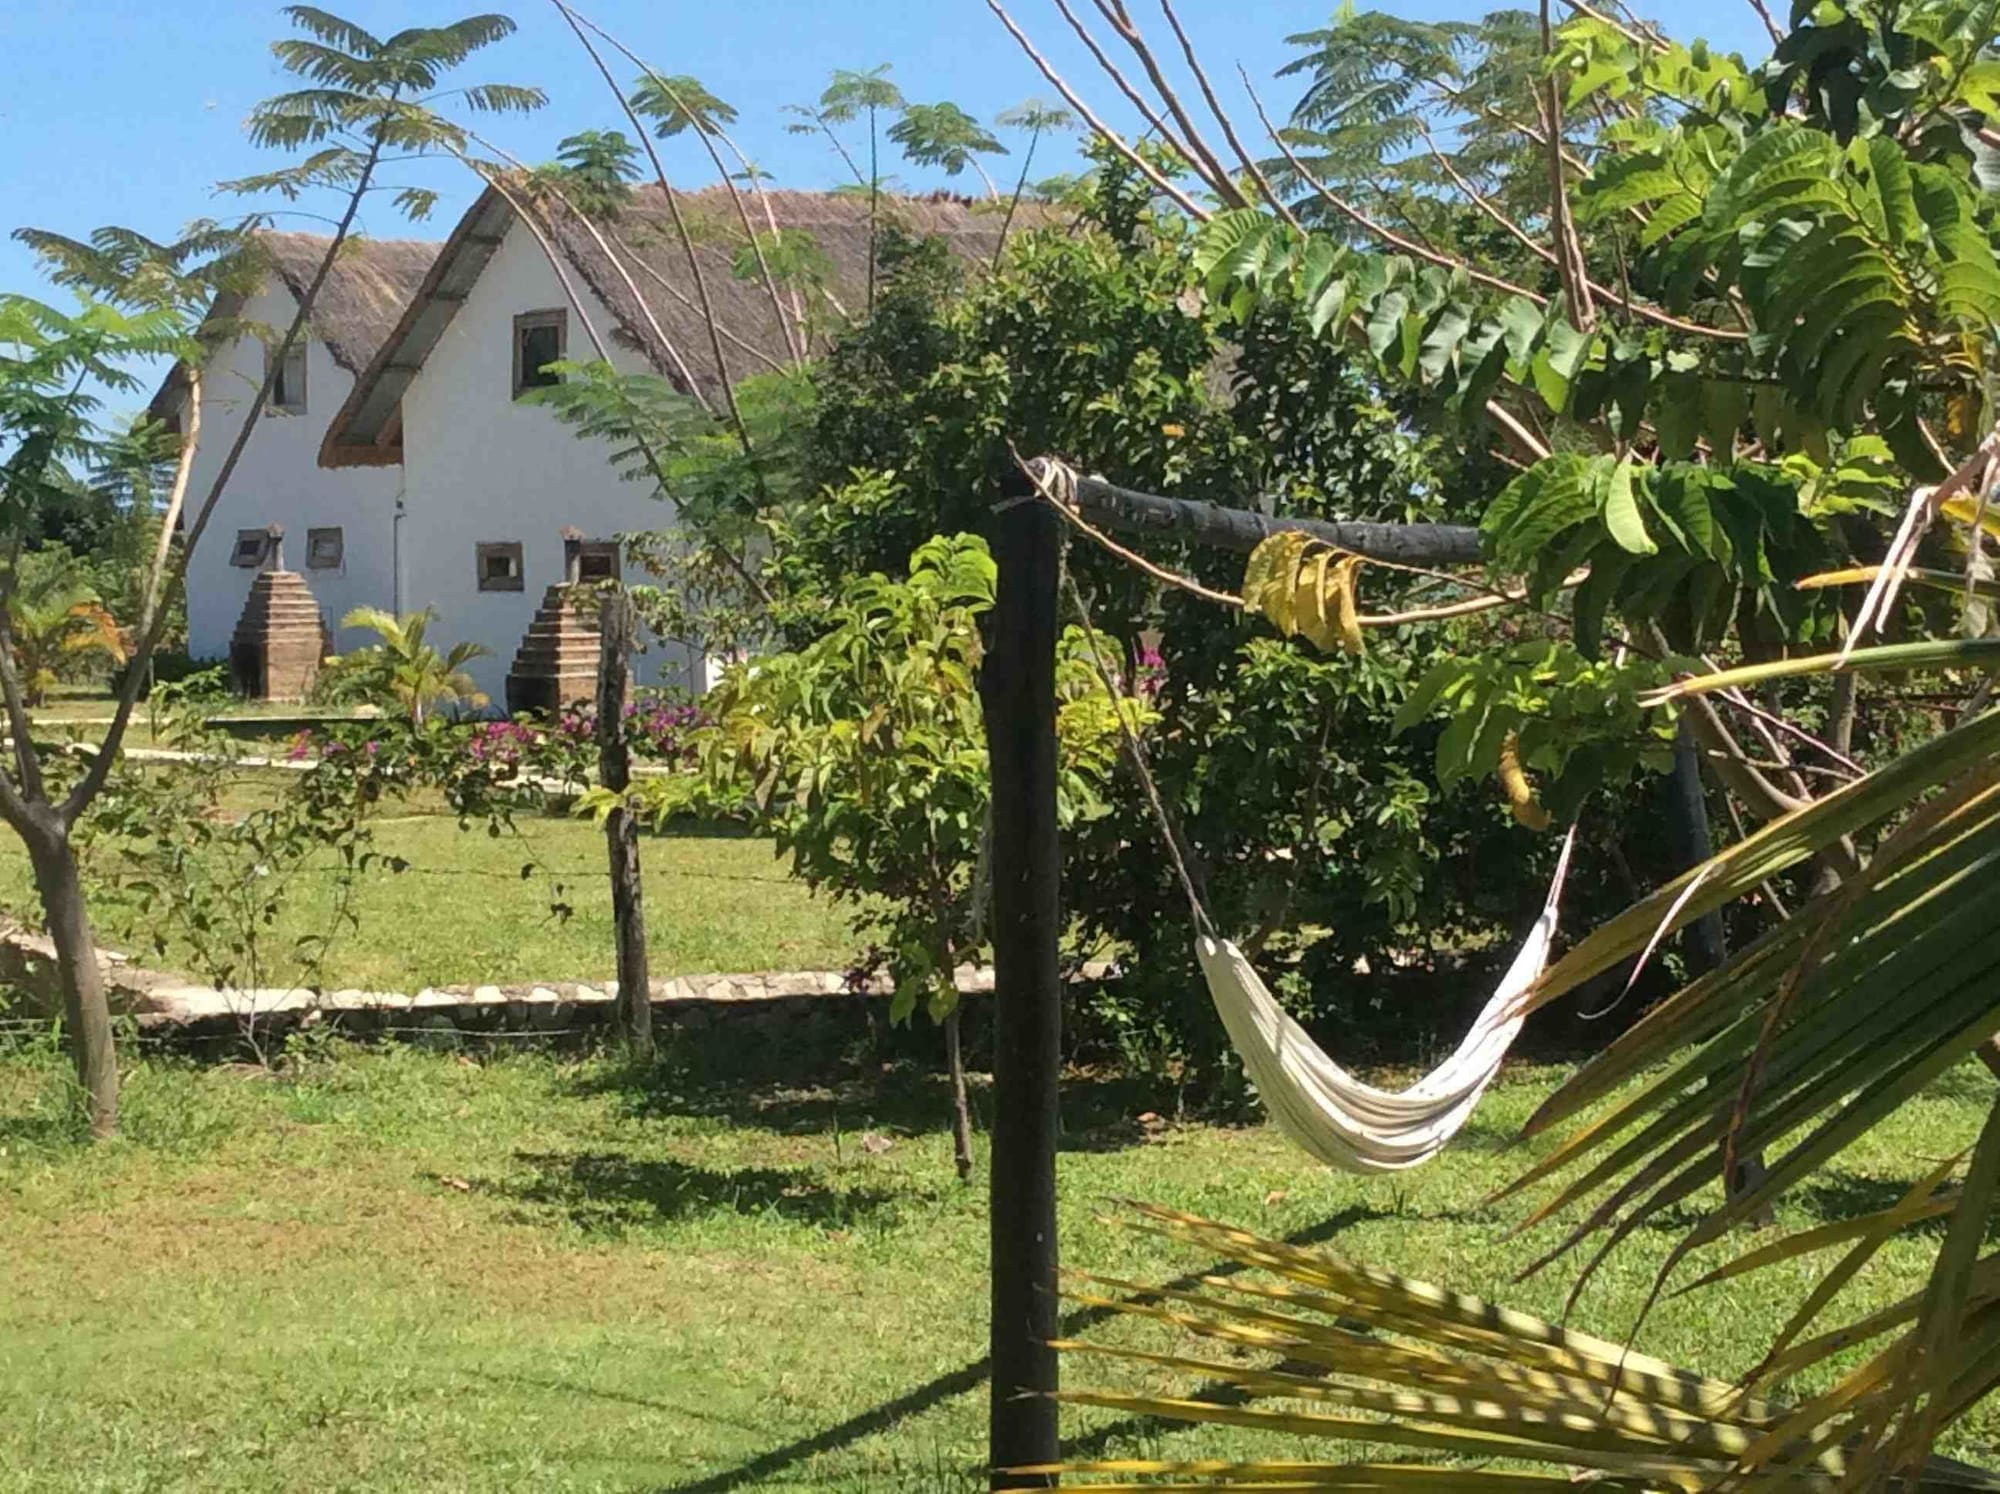 Papa's Cafe and Bungalows, Lake Victoria